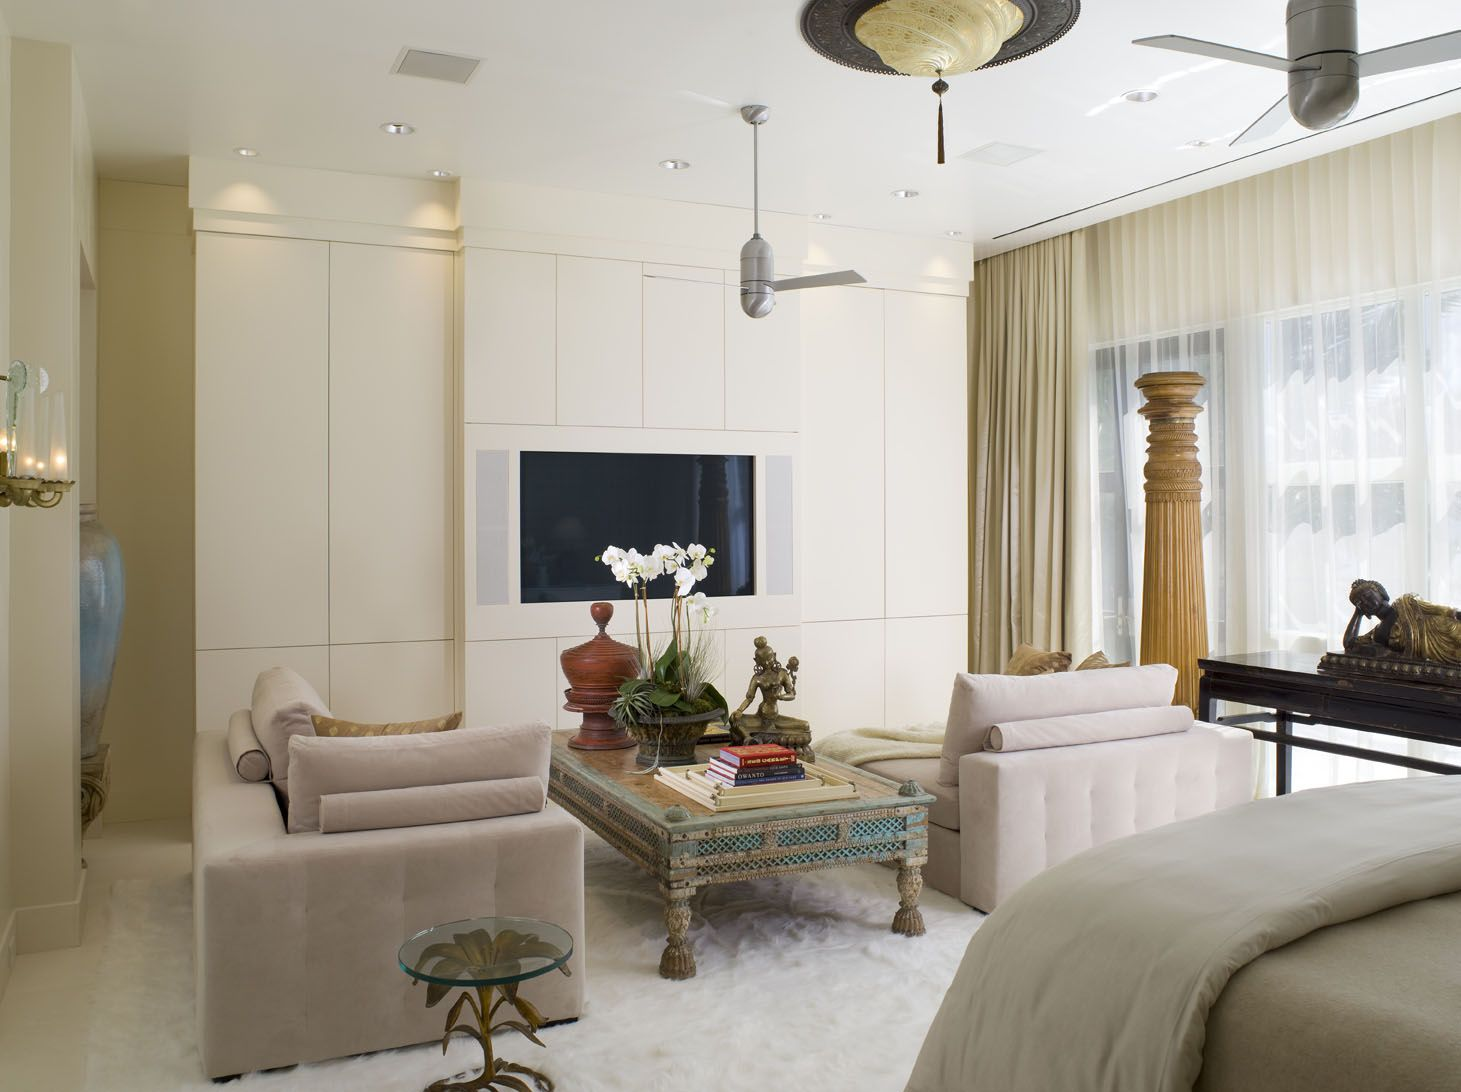 Modern Neutral Bedroom Sitting Area with Antique Column